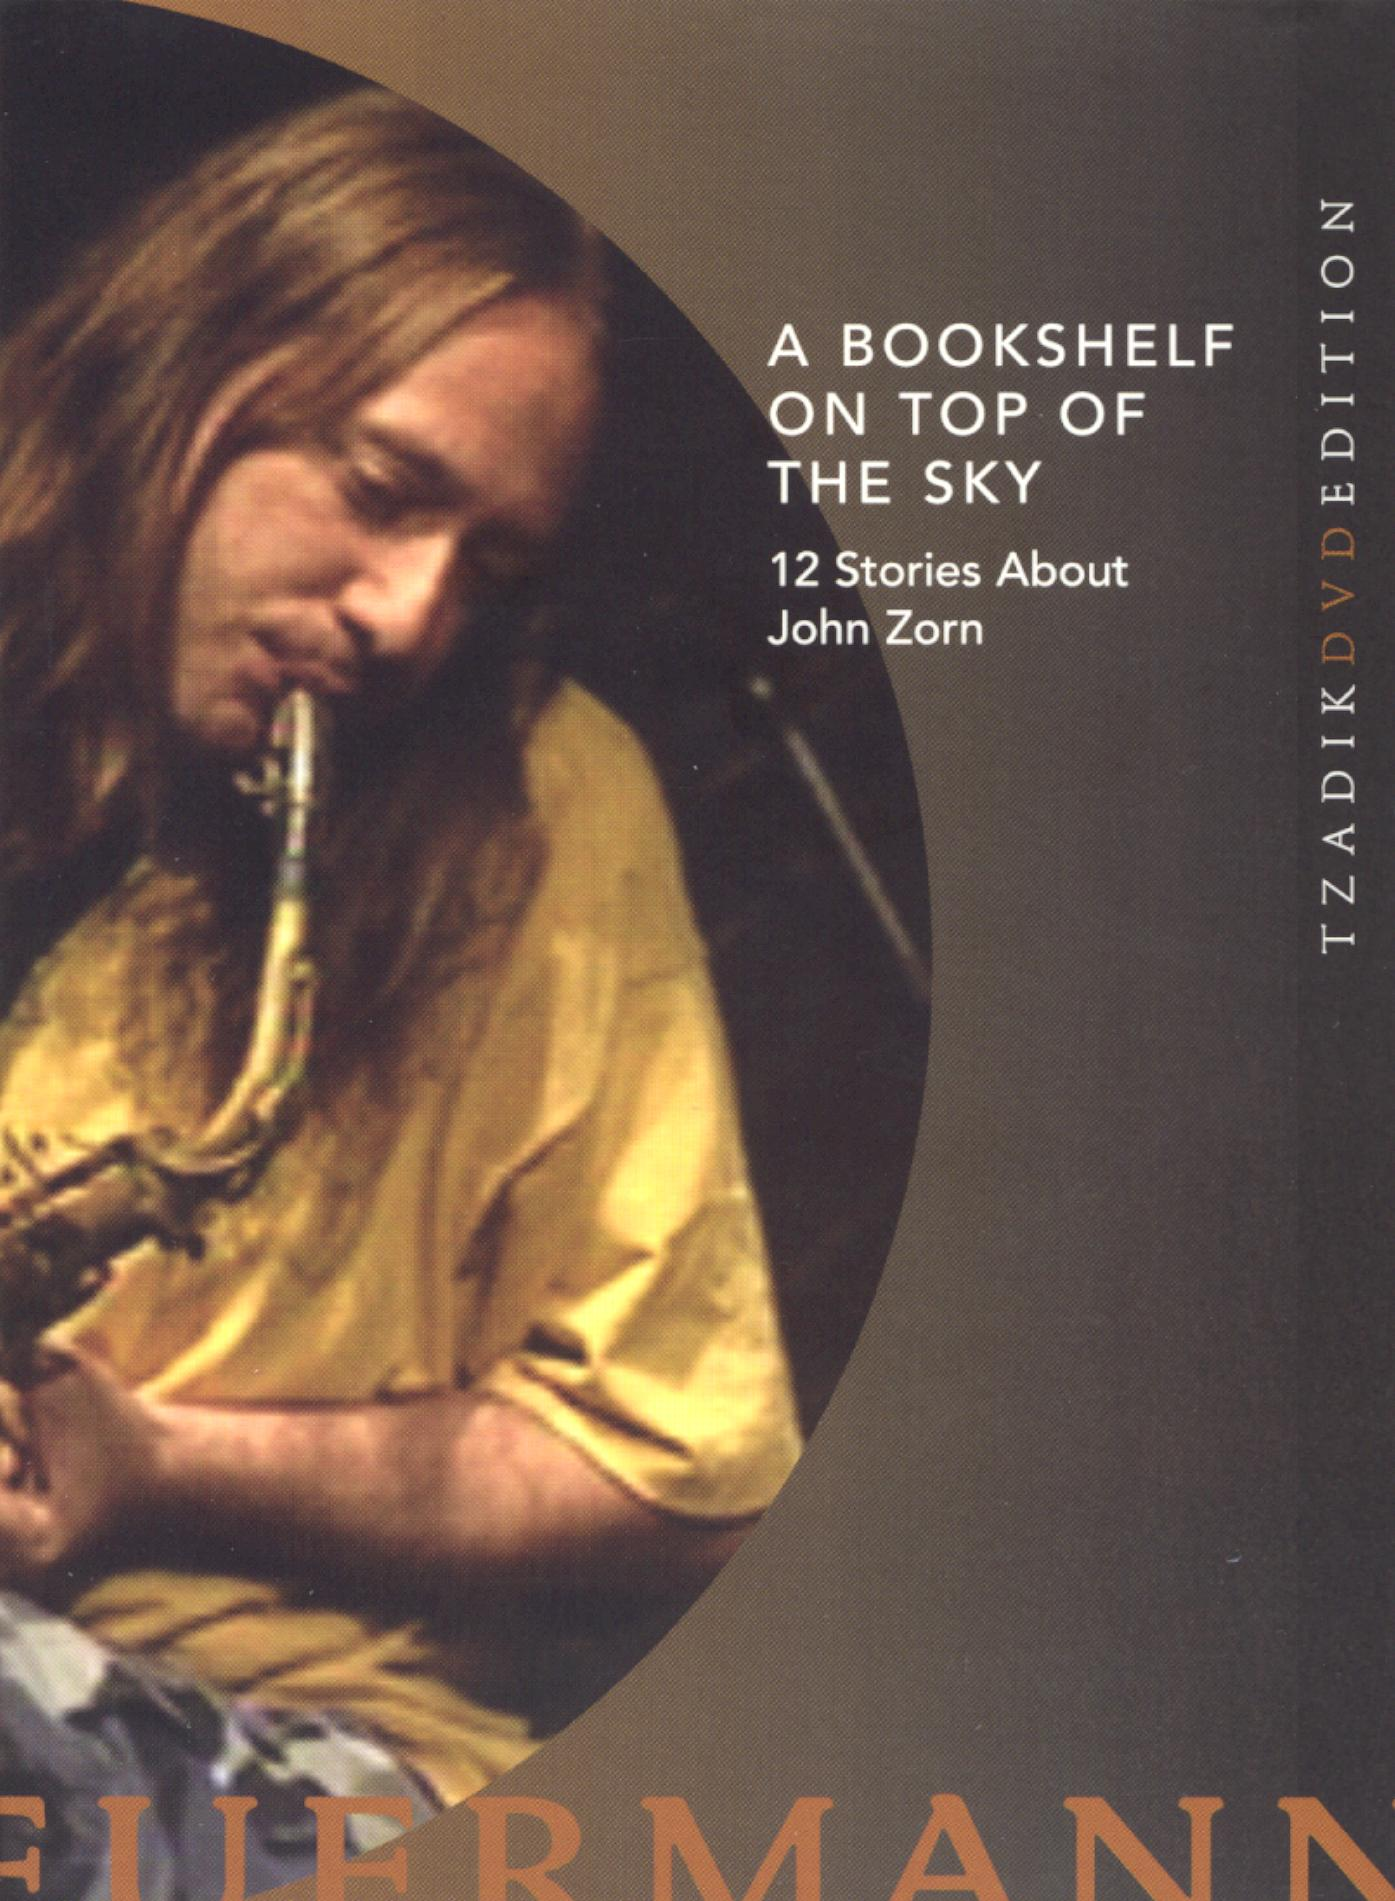 A Bookshelf on Top of the Sky: Twelve Stories About John Zorn